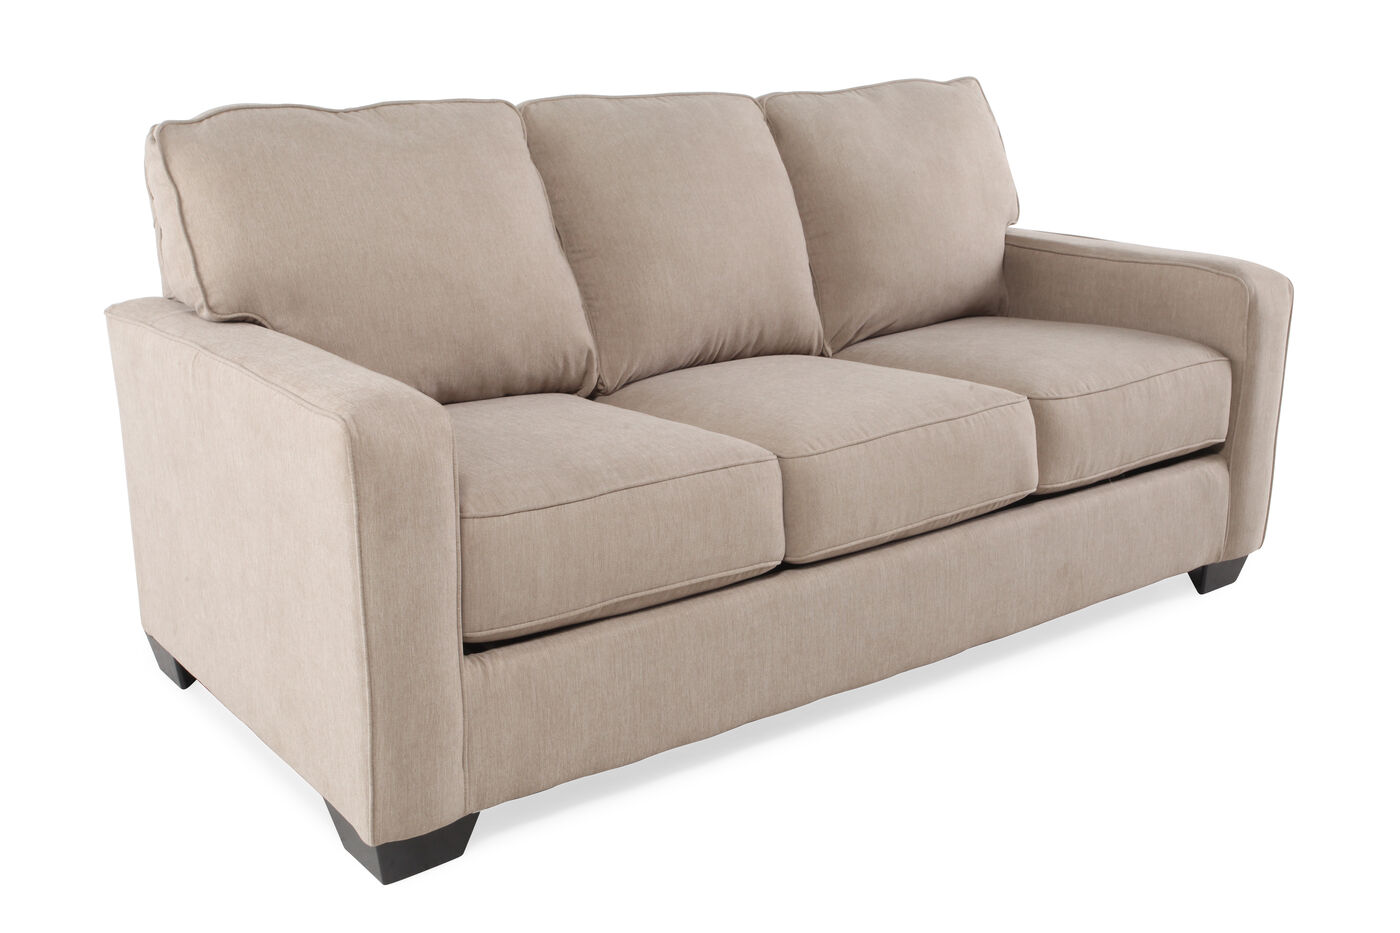 which ottoman is out size sleeper sofa full chaise hide a convertible fold small couch com bed or and it twin pull queen